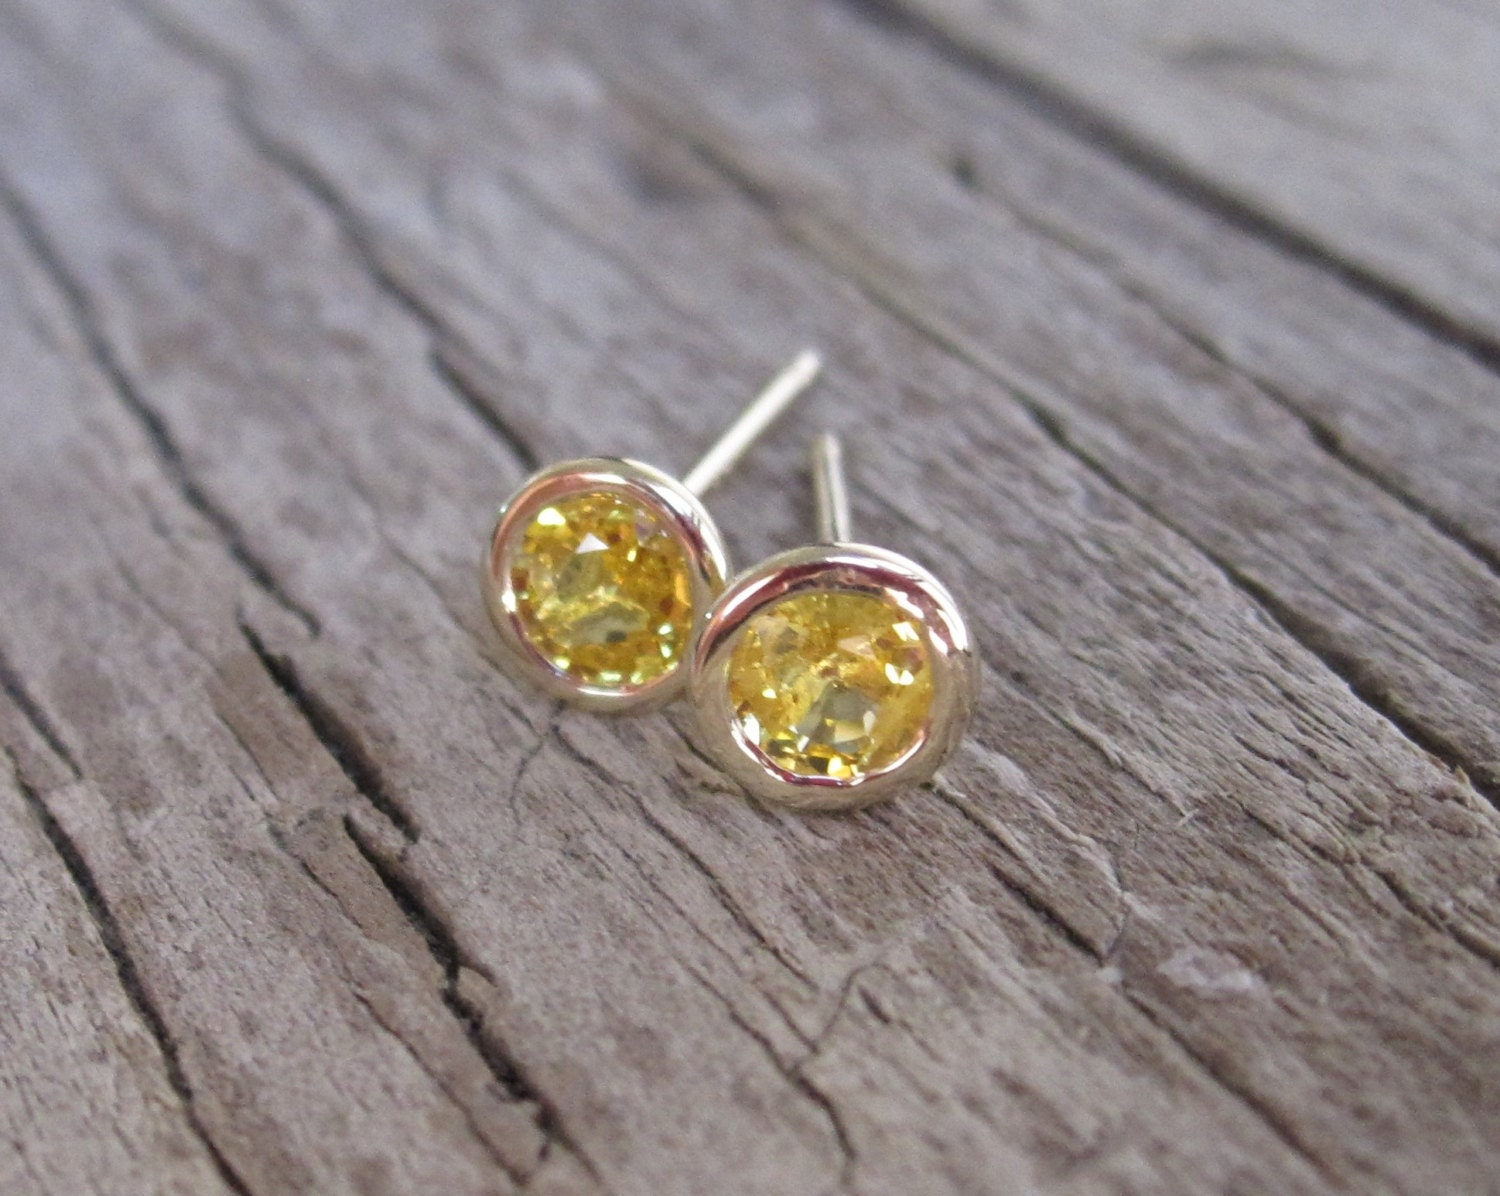 Yellow Sapphire Bezel Stud Earrings In 14k Gold By Studio1040. Embroidery Bracelet. Wholesale Sterling Silver. Pure Gold Earrings. Black Bracelet. Women Band. Green Face Watches. Tri Color Gold Bracelet. Military Royale Watches